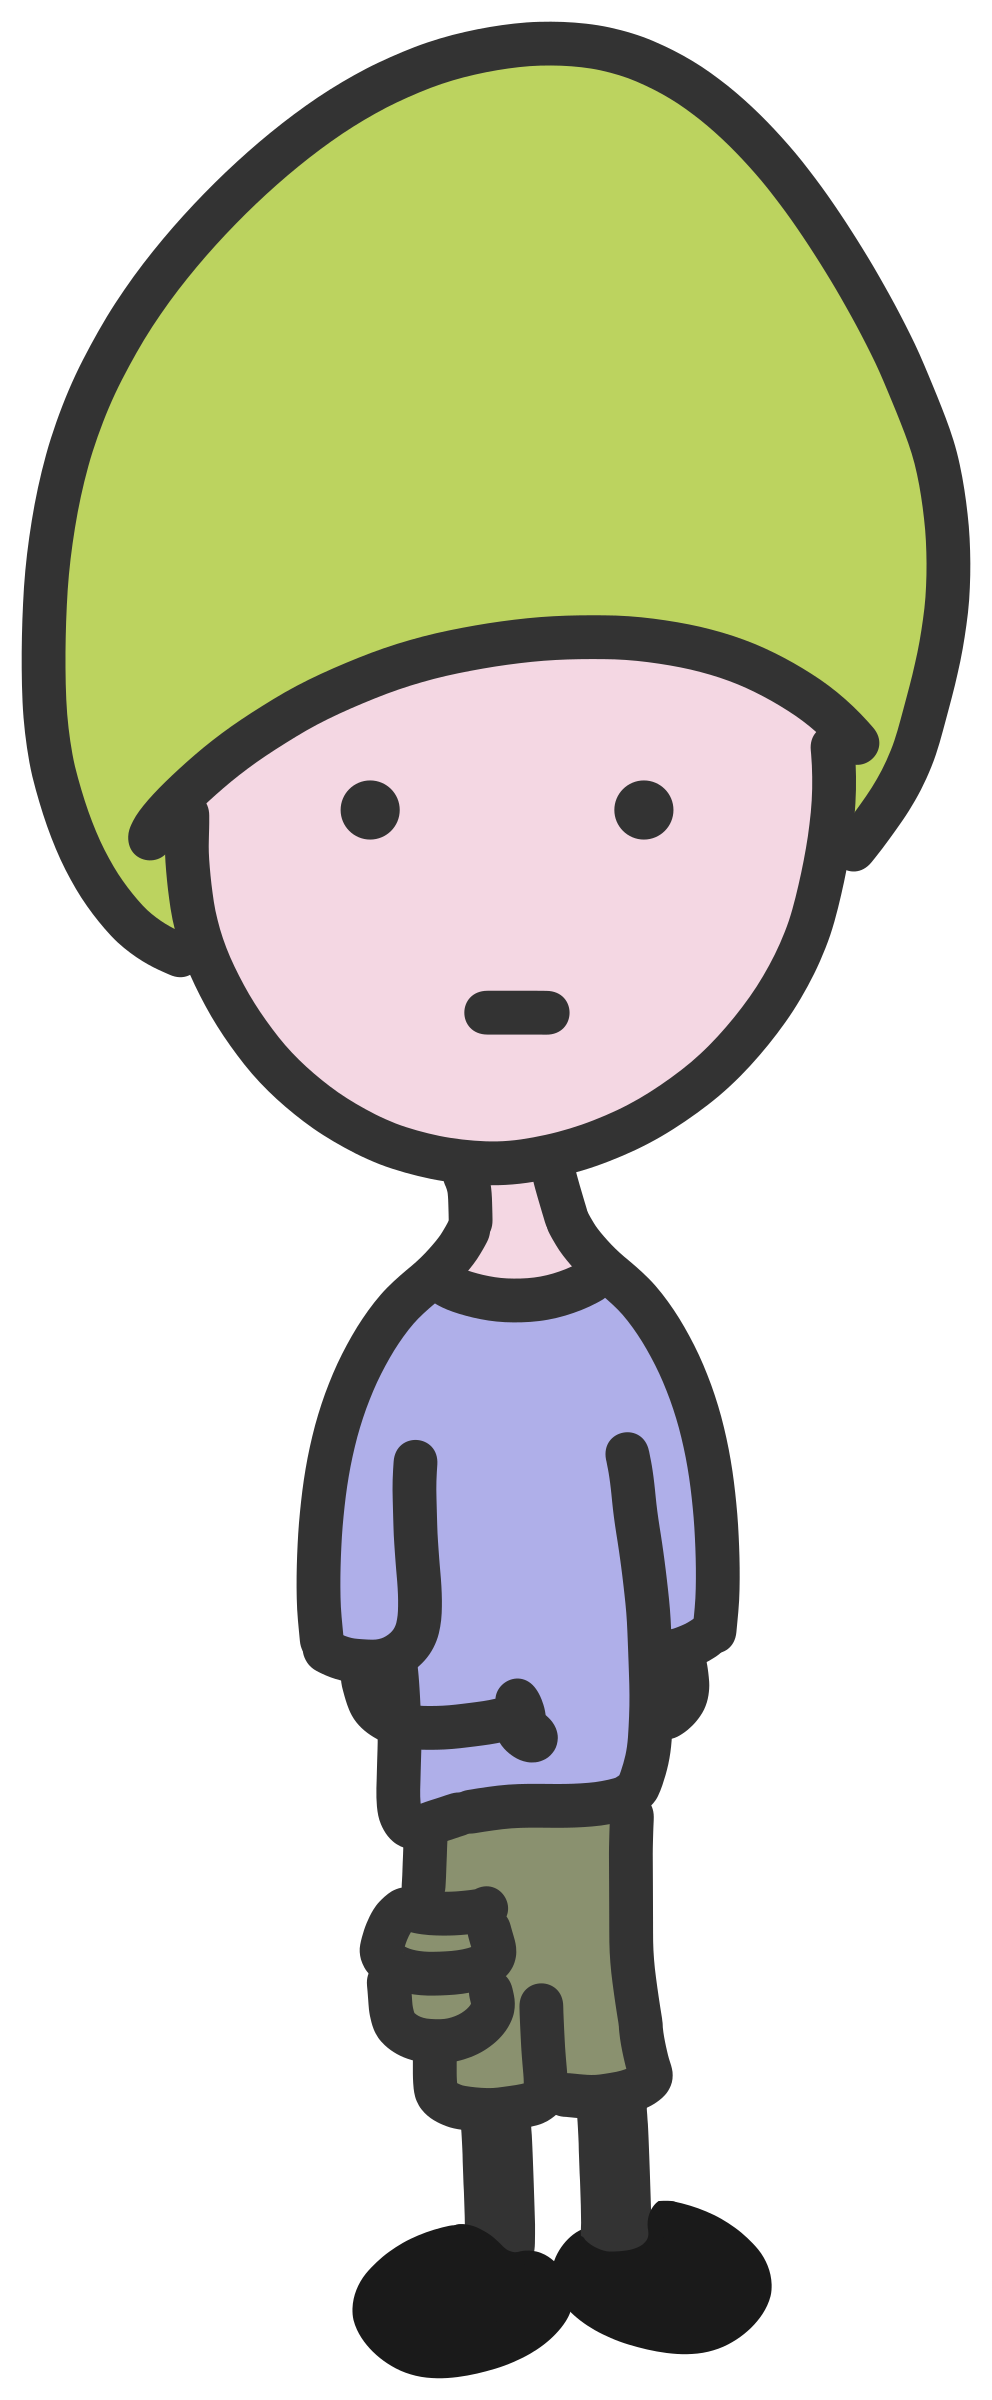 Images of quiet person. Mouth clipart silent